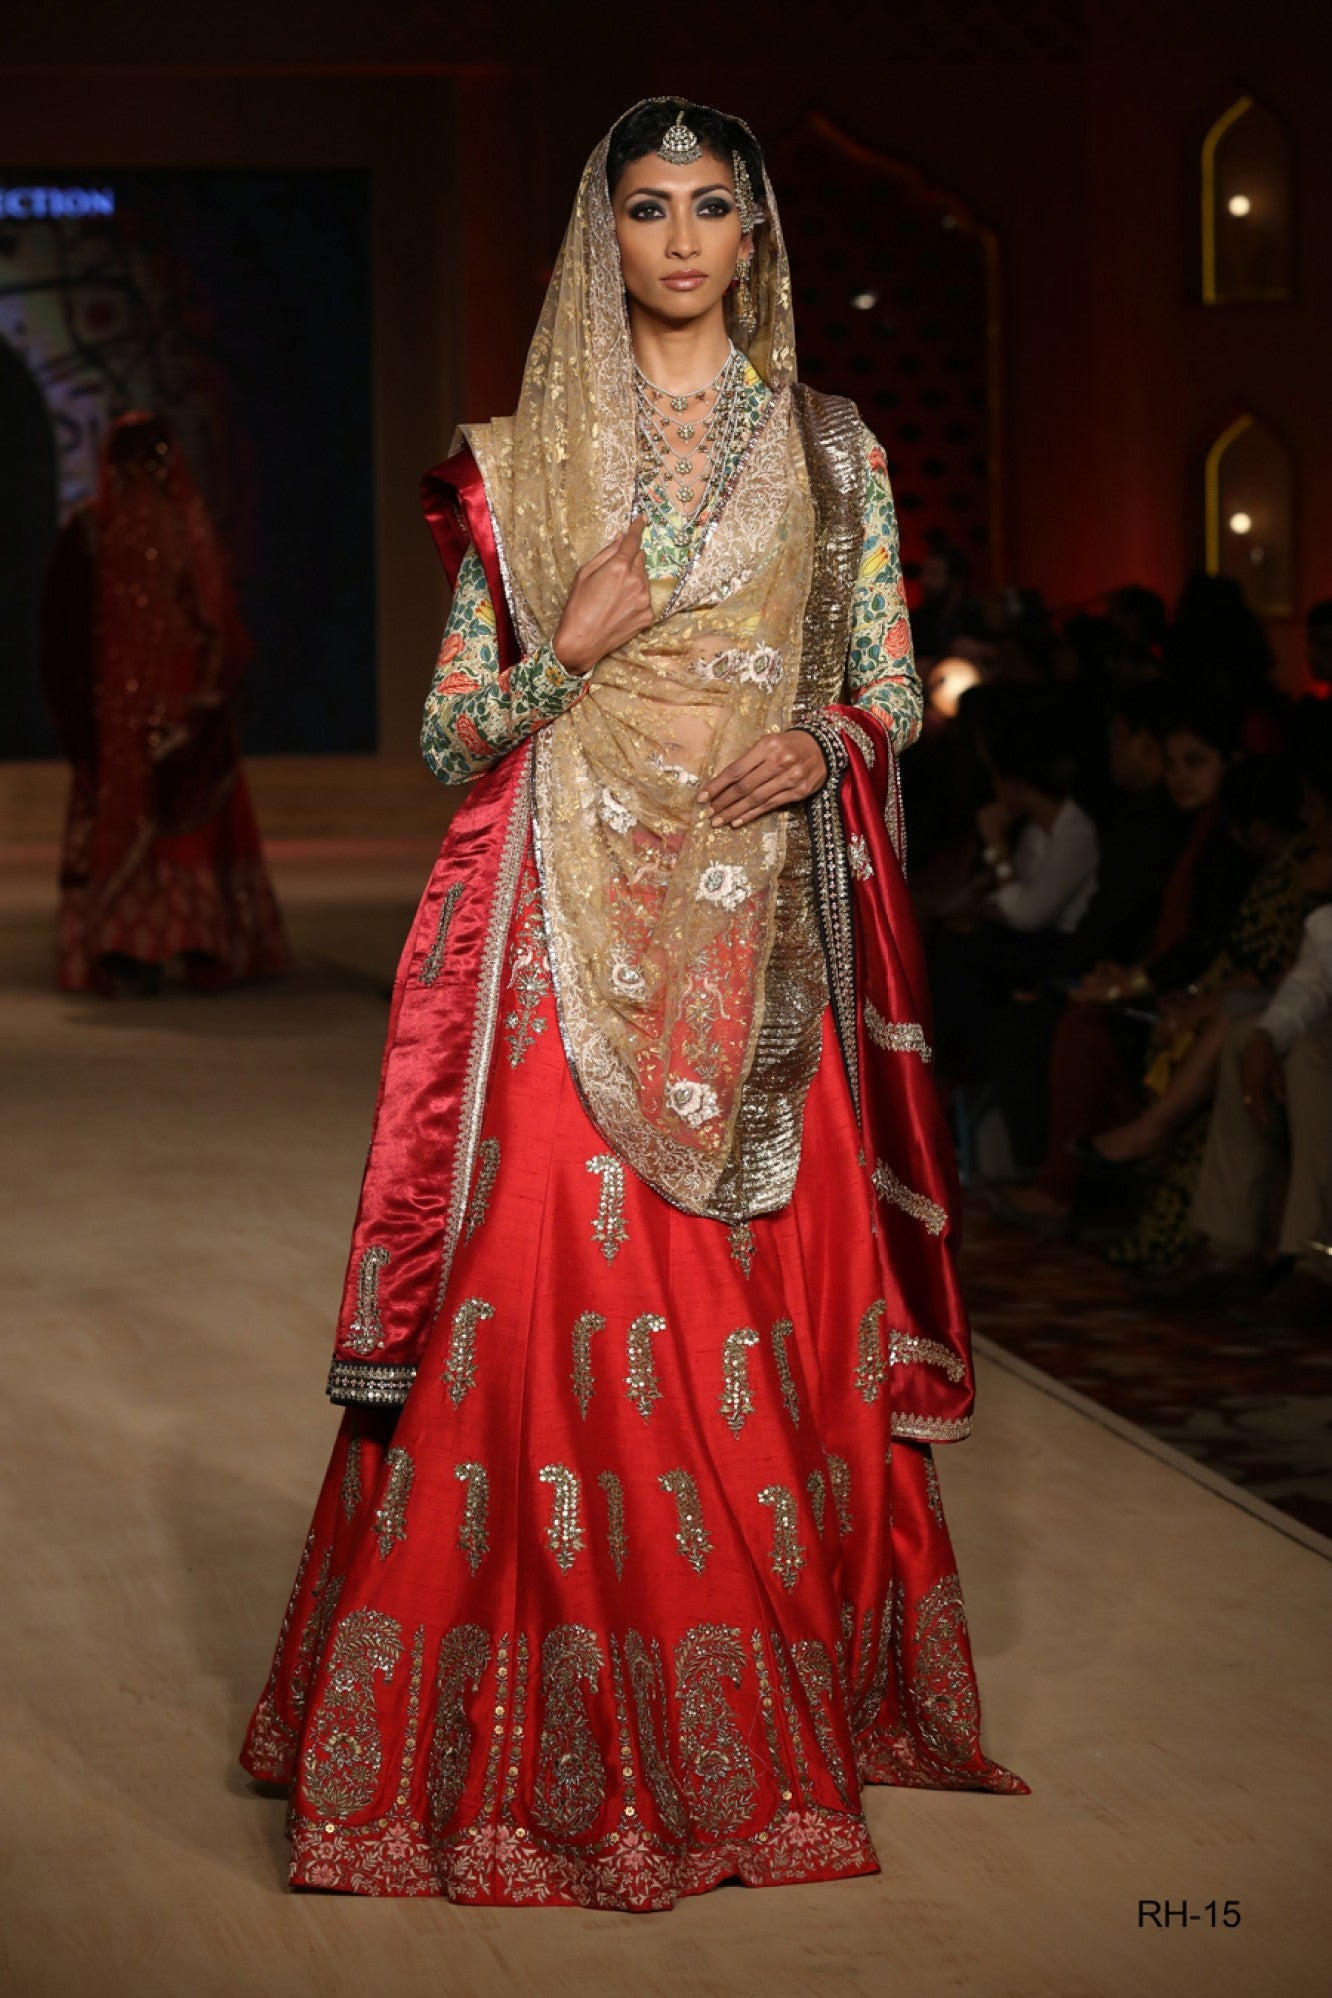 Gold and red lehenga choli